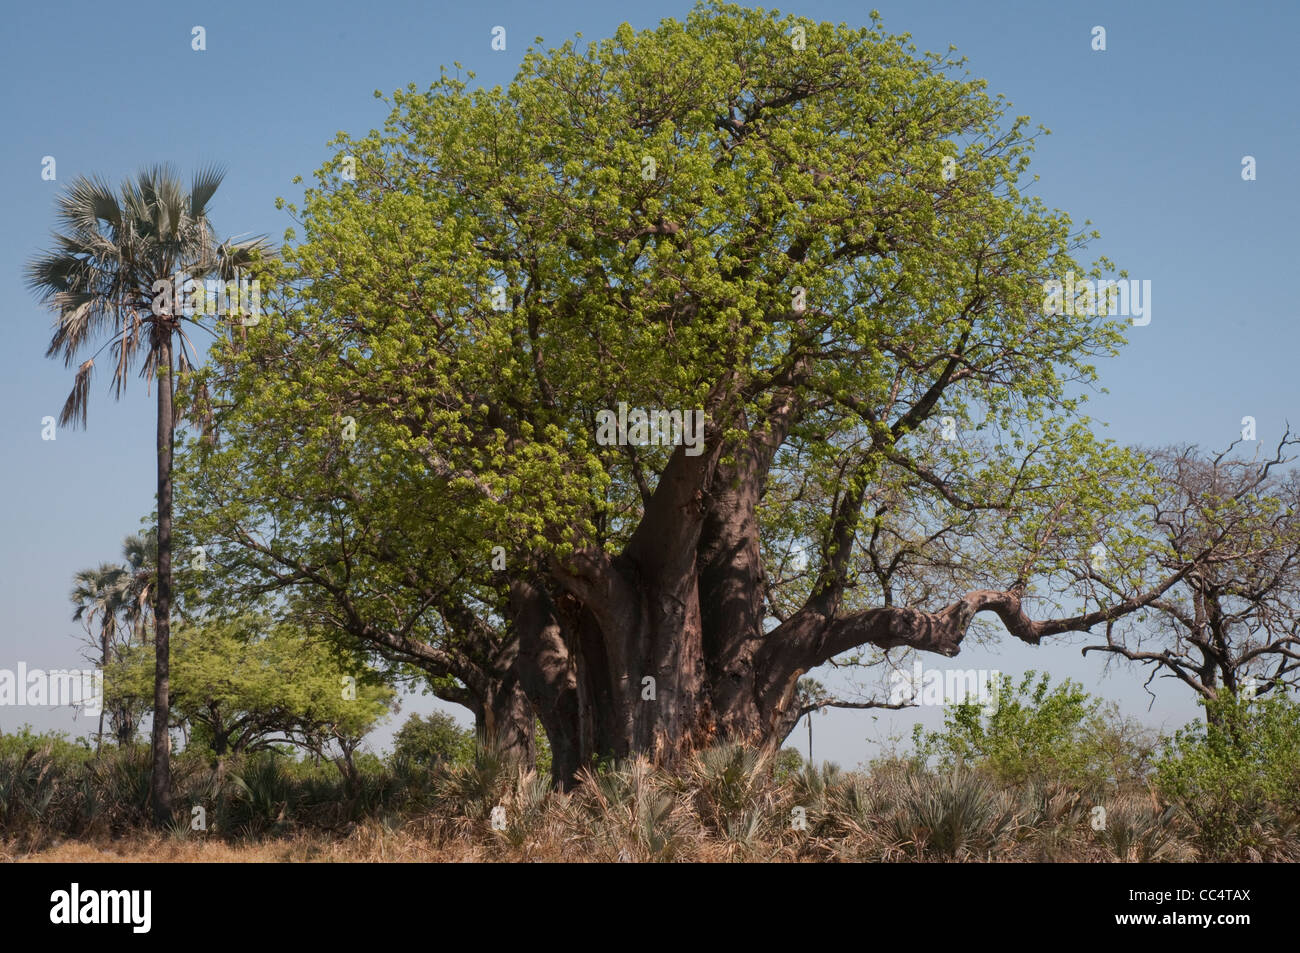 afrika botswana tuba baum baobab baum baobab affenbrotb ume stockfoto bild 41903538 alamy. Black Bedroom Furniture Sets. Home Design Ideas